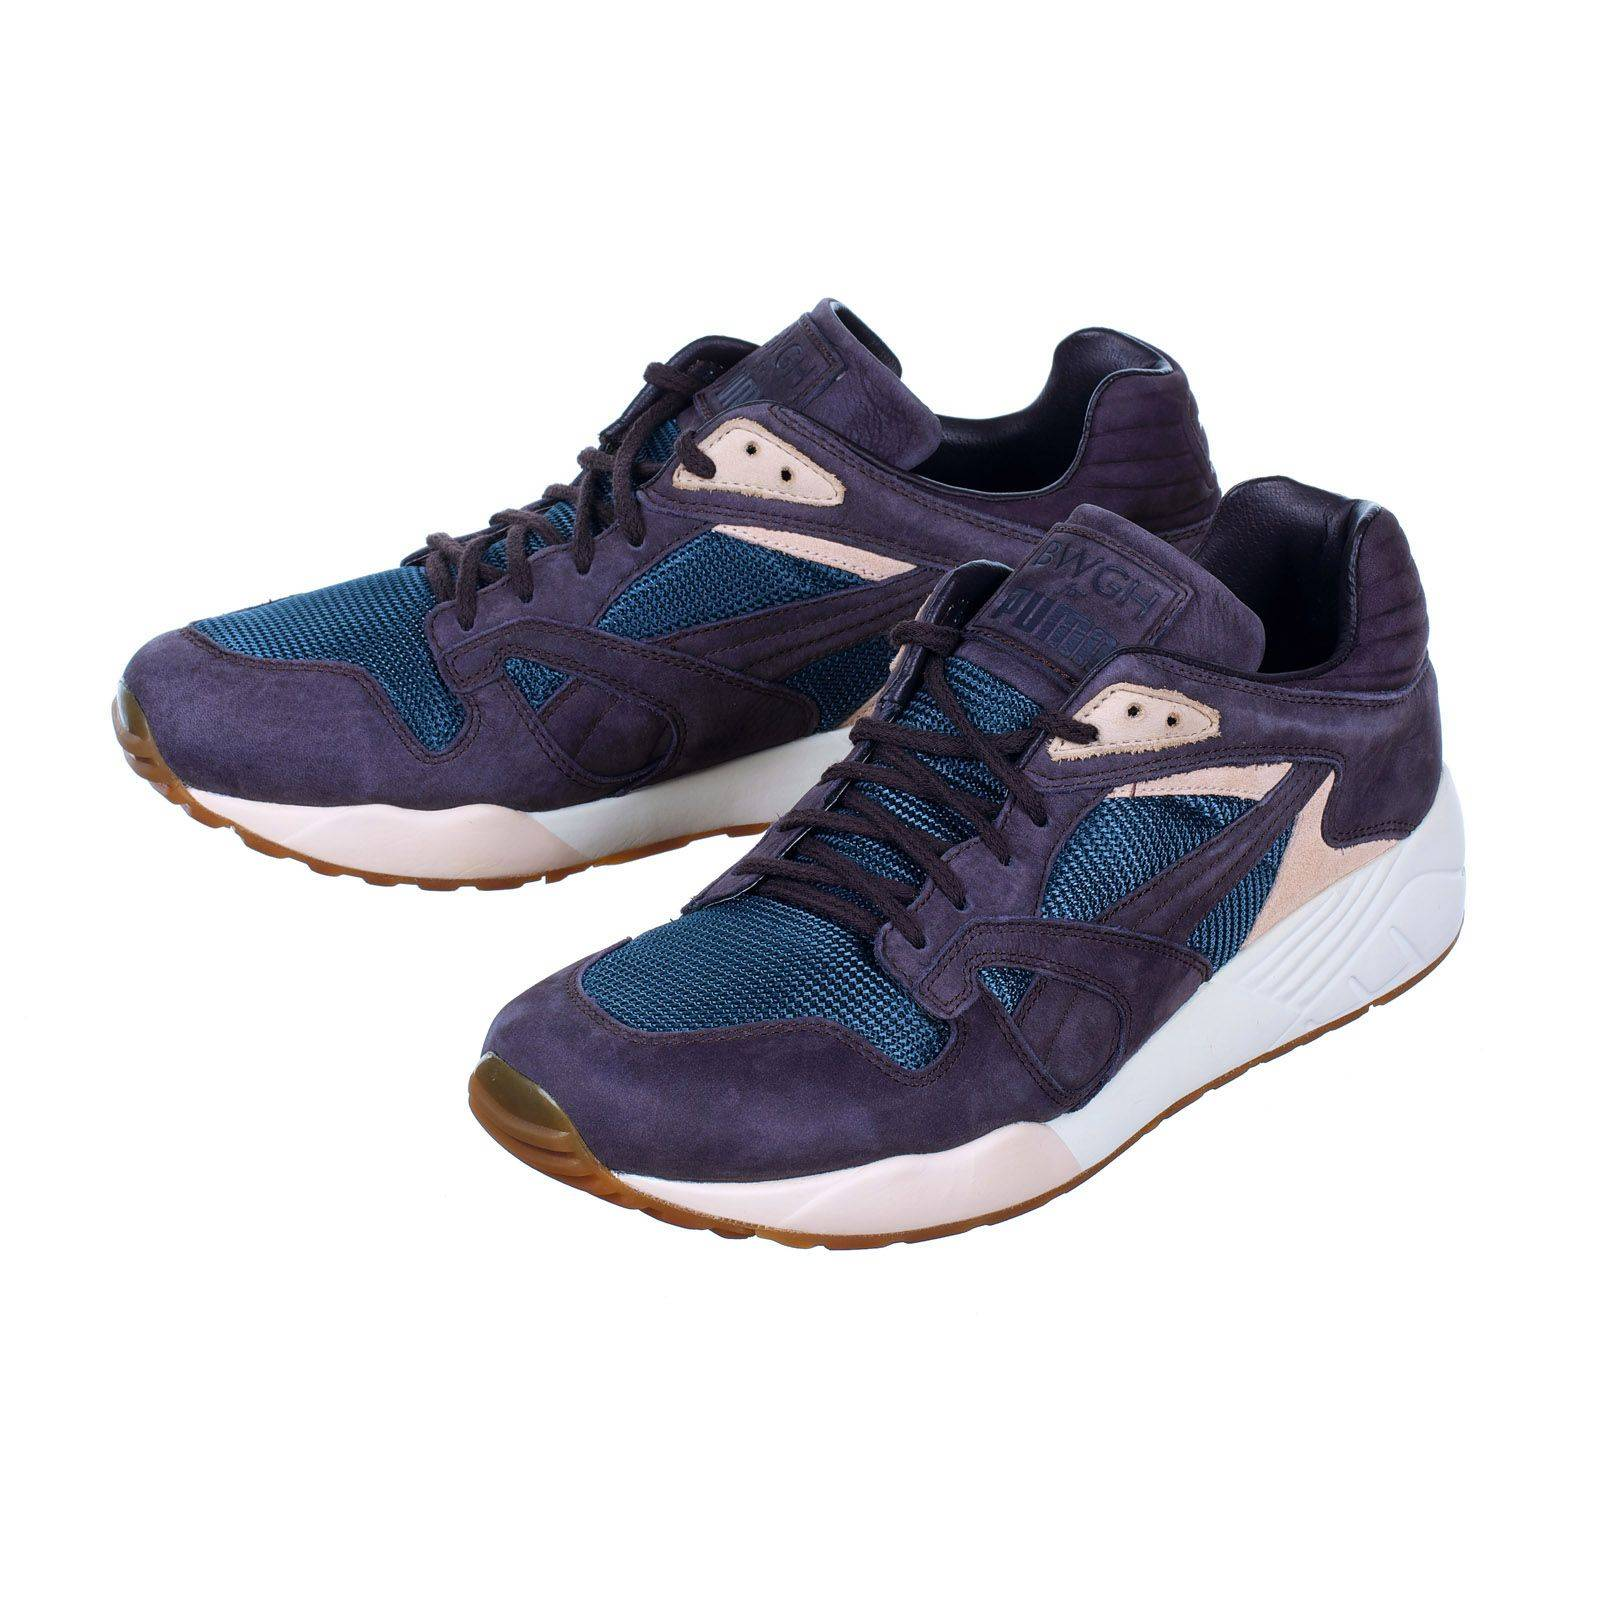 214de6b3fdb1 Puma Baskets Orion Mode Bleu Brandalley a4z7ax